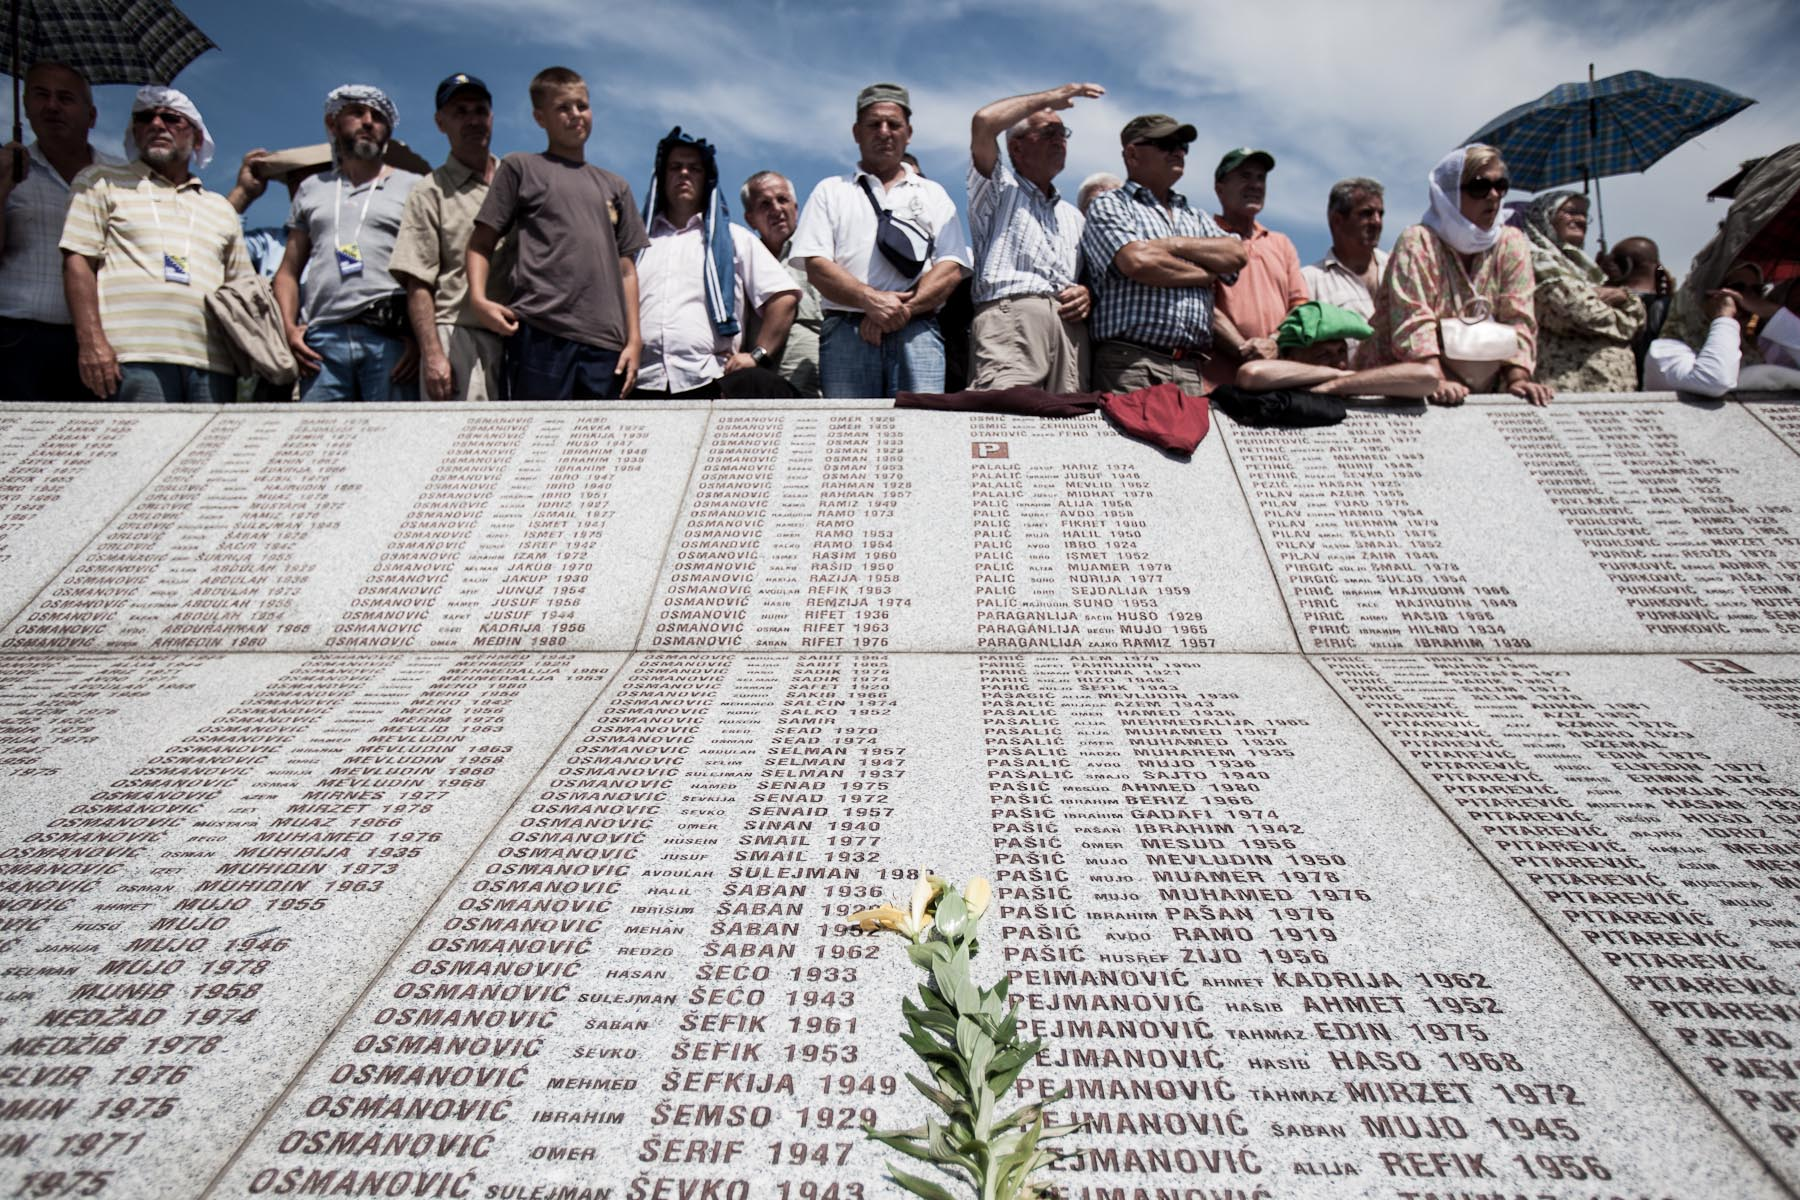 Crowds of people watch the memorial ceremony at the Potocari cemetery in Srebrenica before the mass burial of 775 newly identified victims of the 1995 Srebrenica massacre on July 11, 2010.